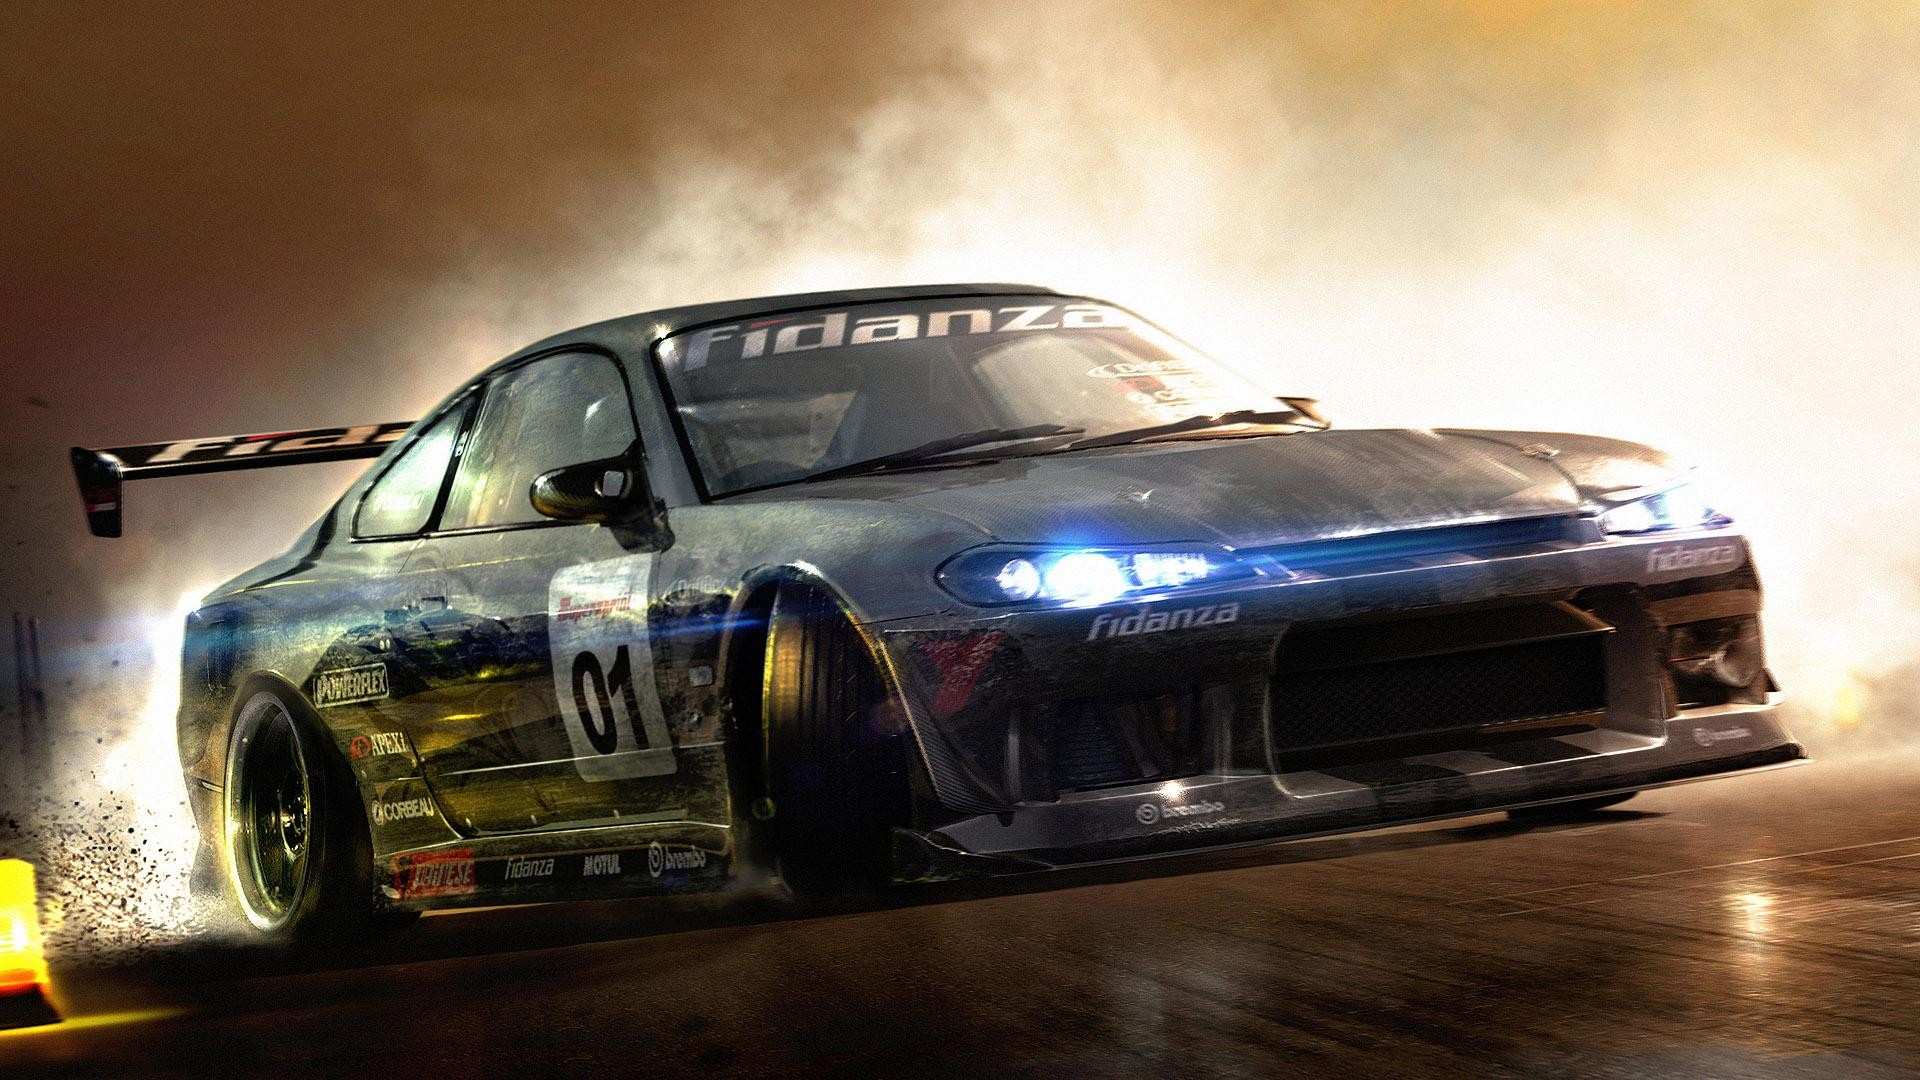 65 Hd Car Wallpapers Download Free Stunning Backgrounds For